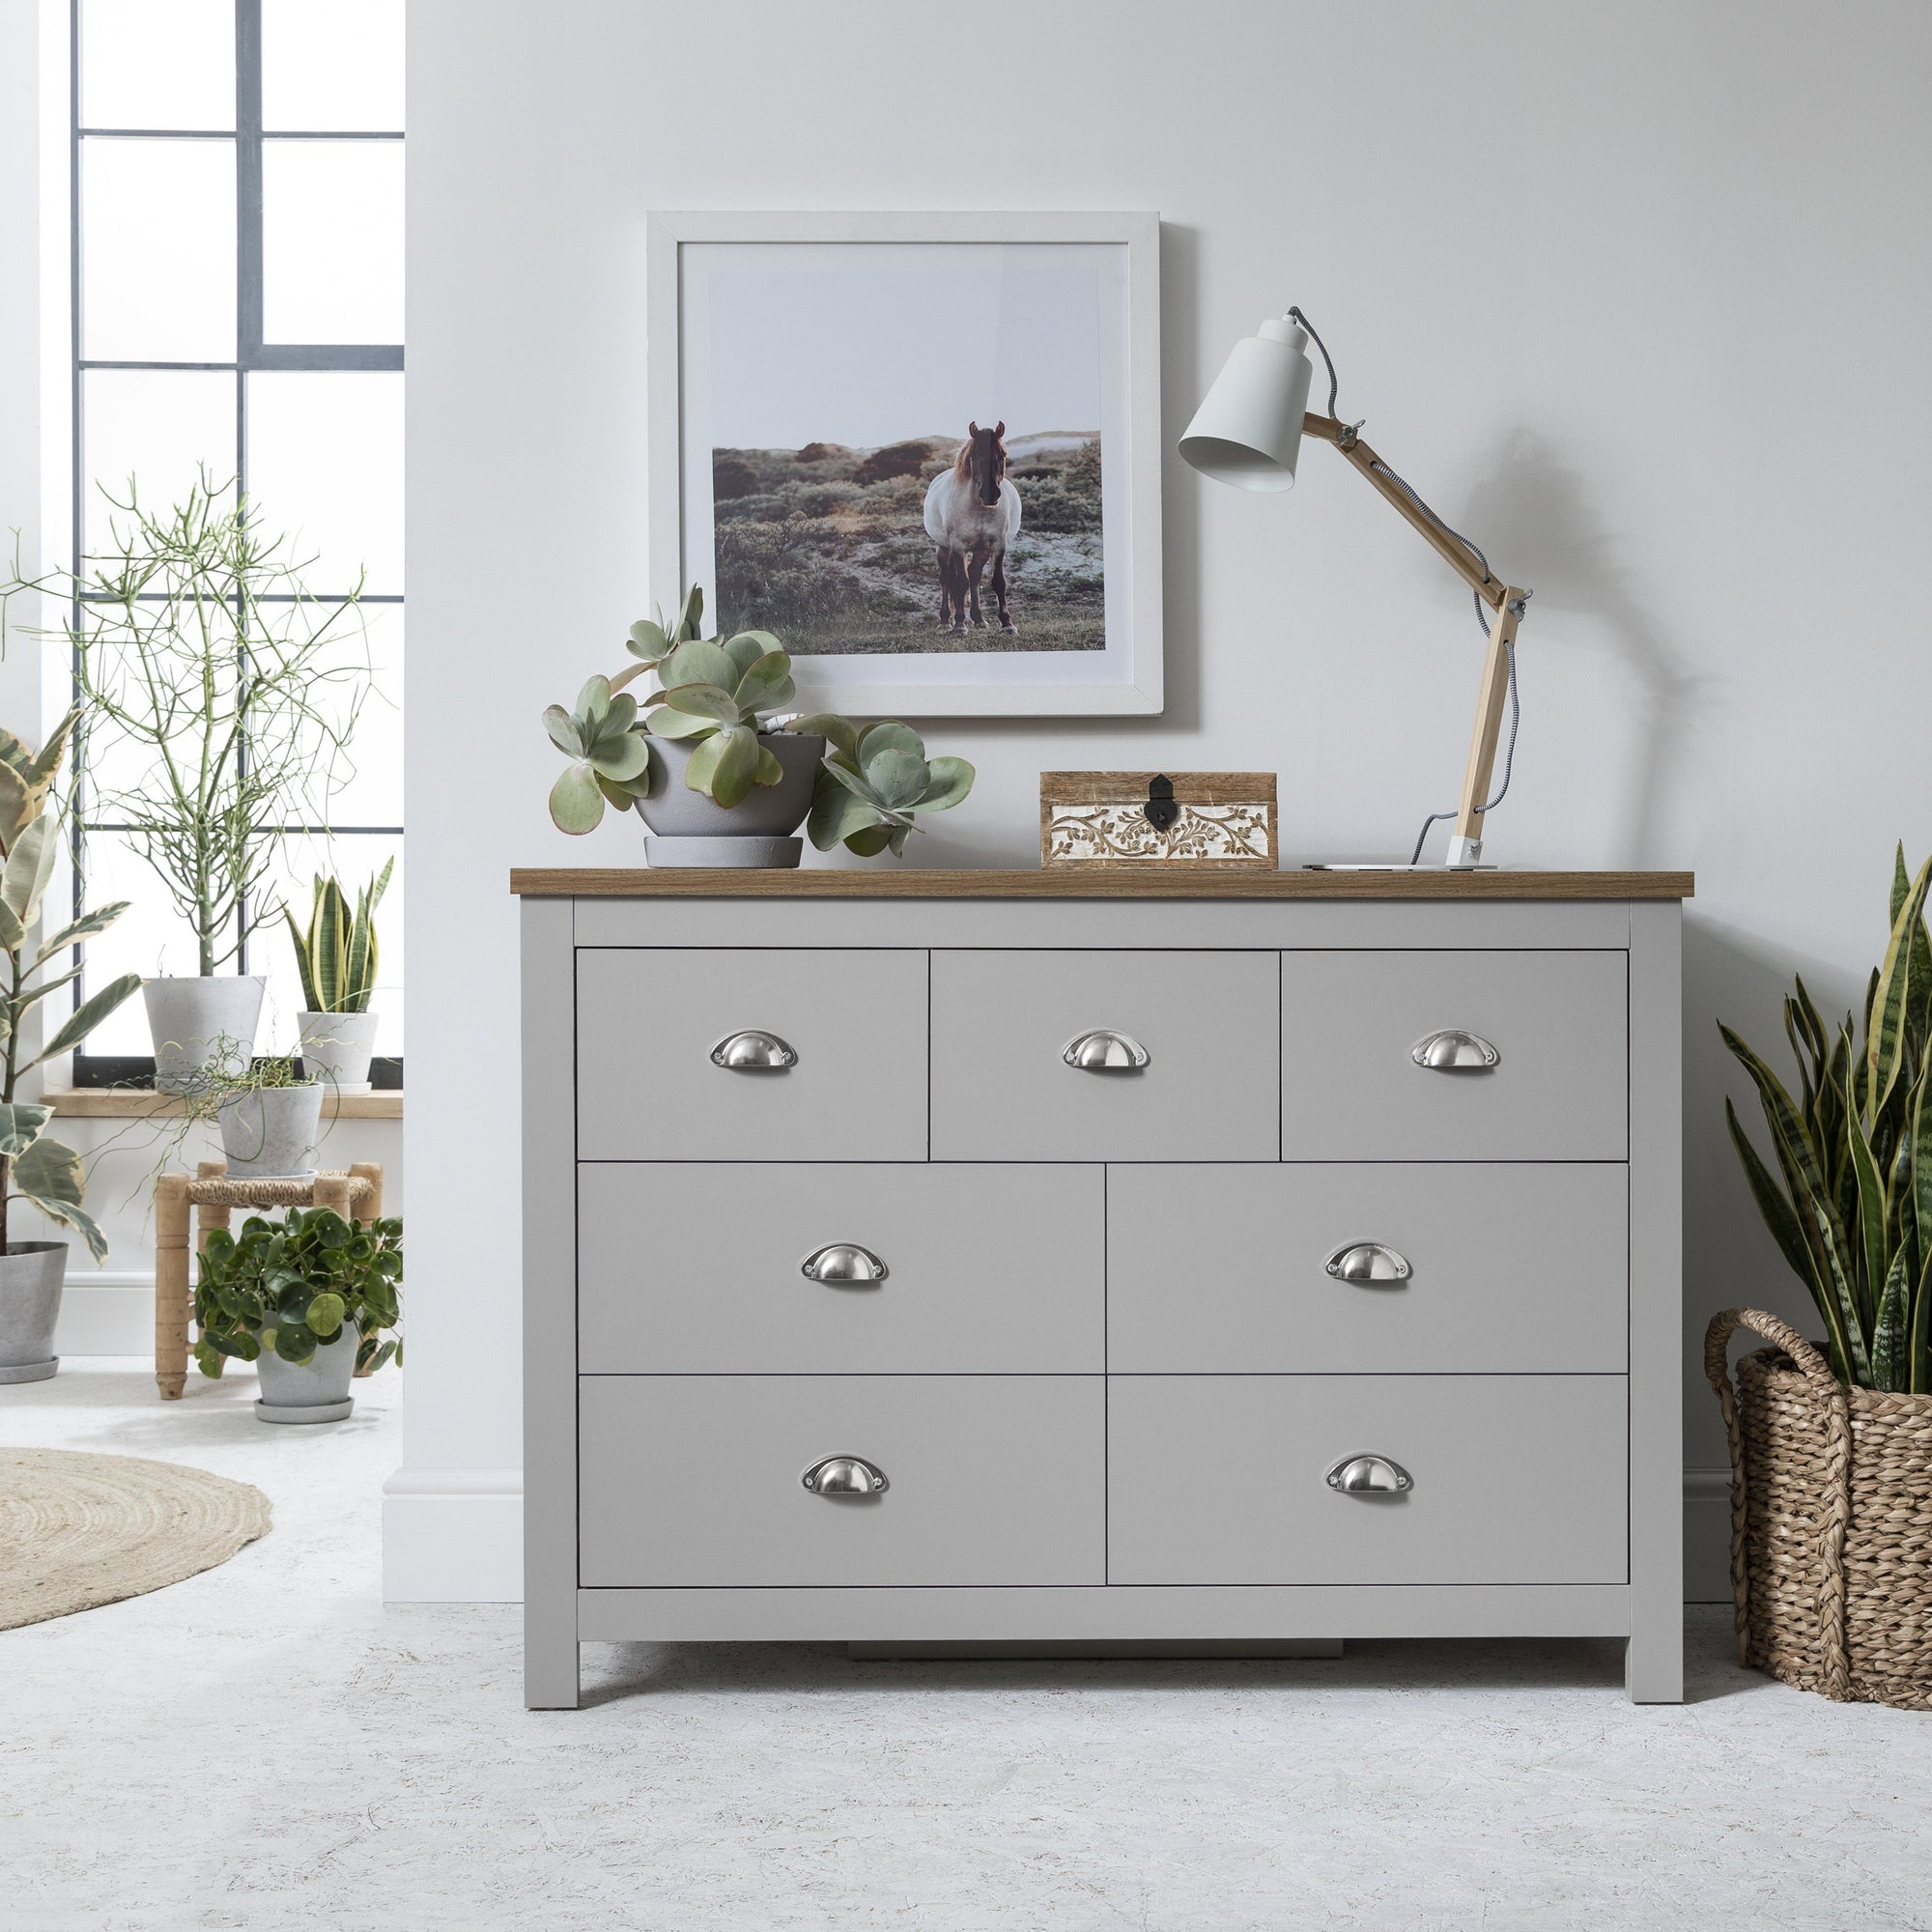 3 Over 4 - Chest of Drawers in Grey - Bampton